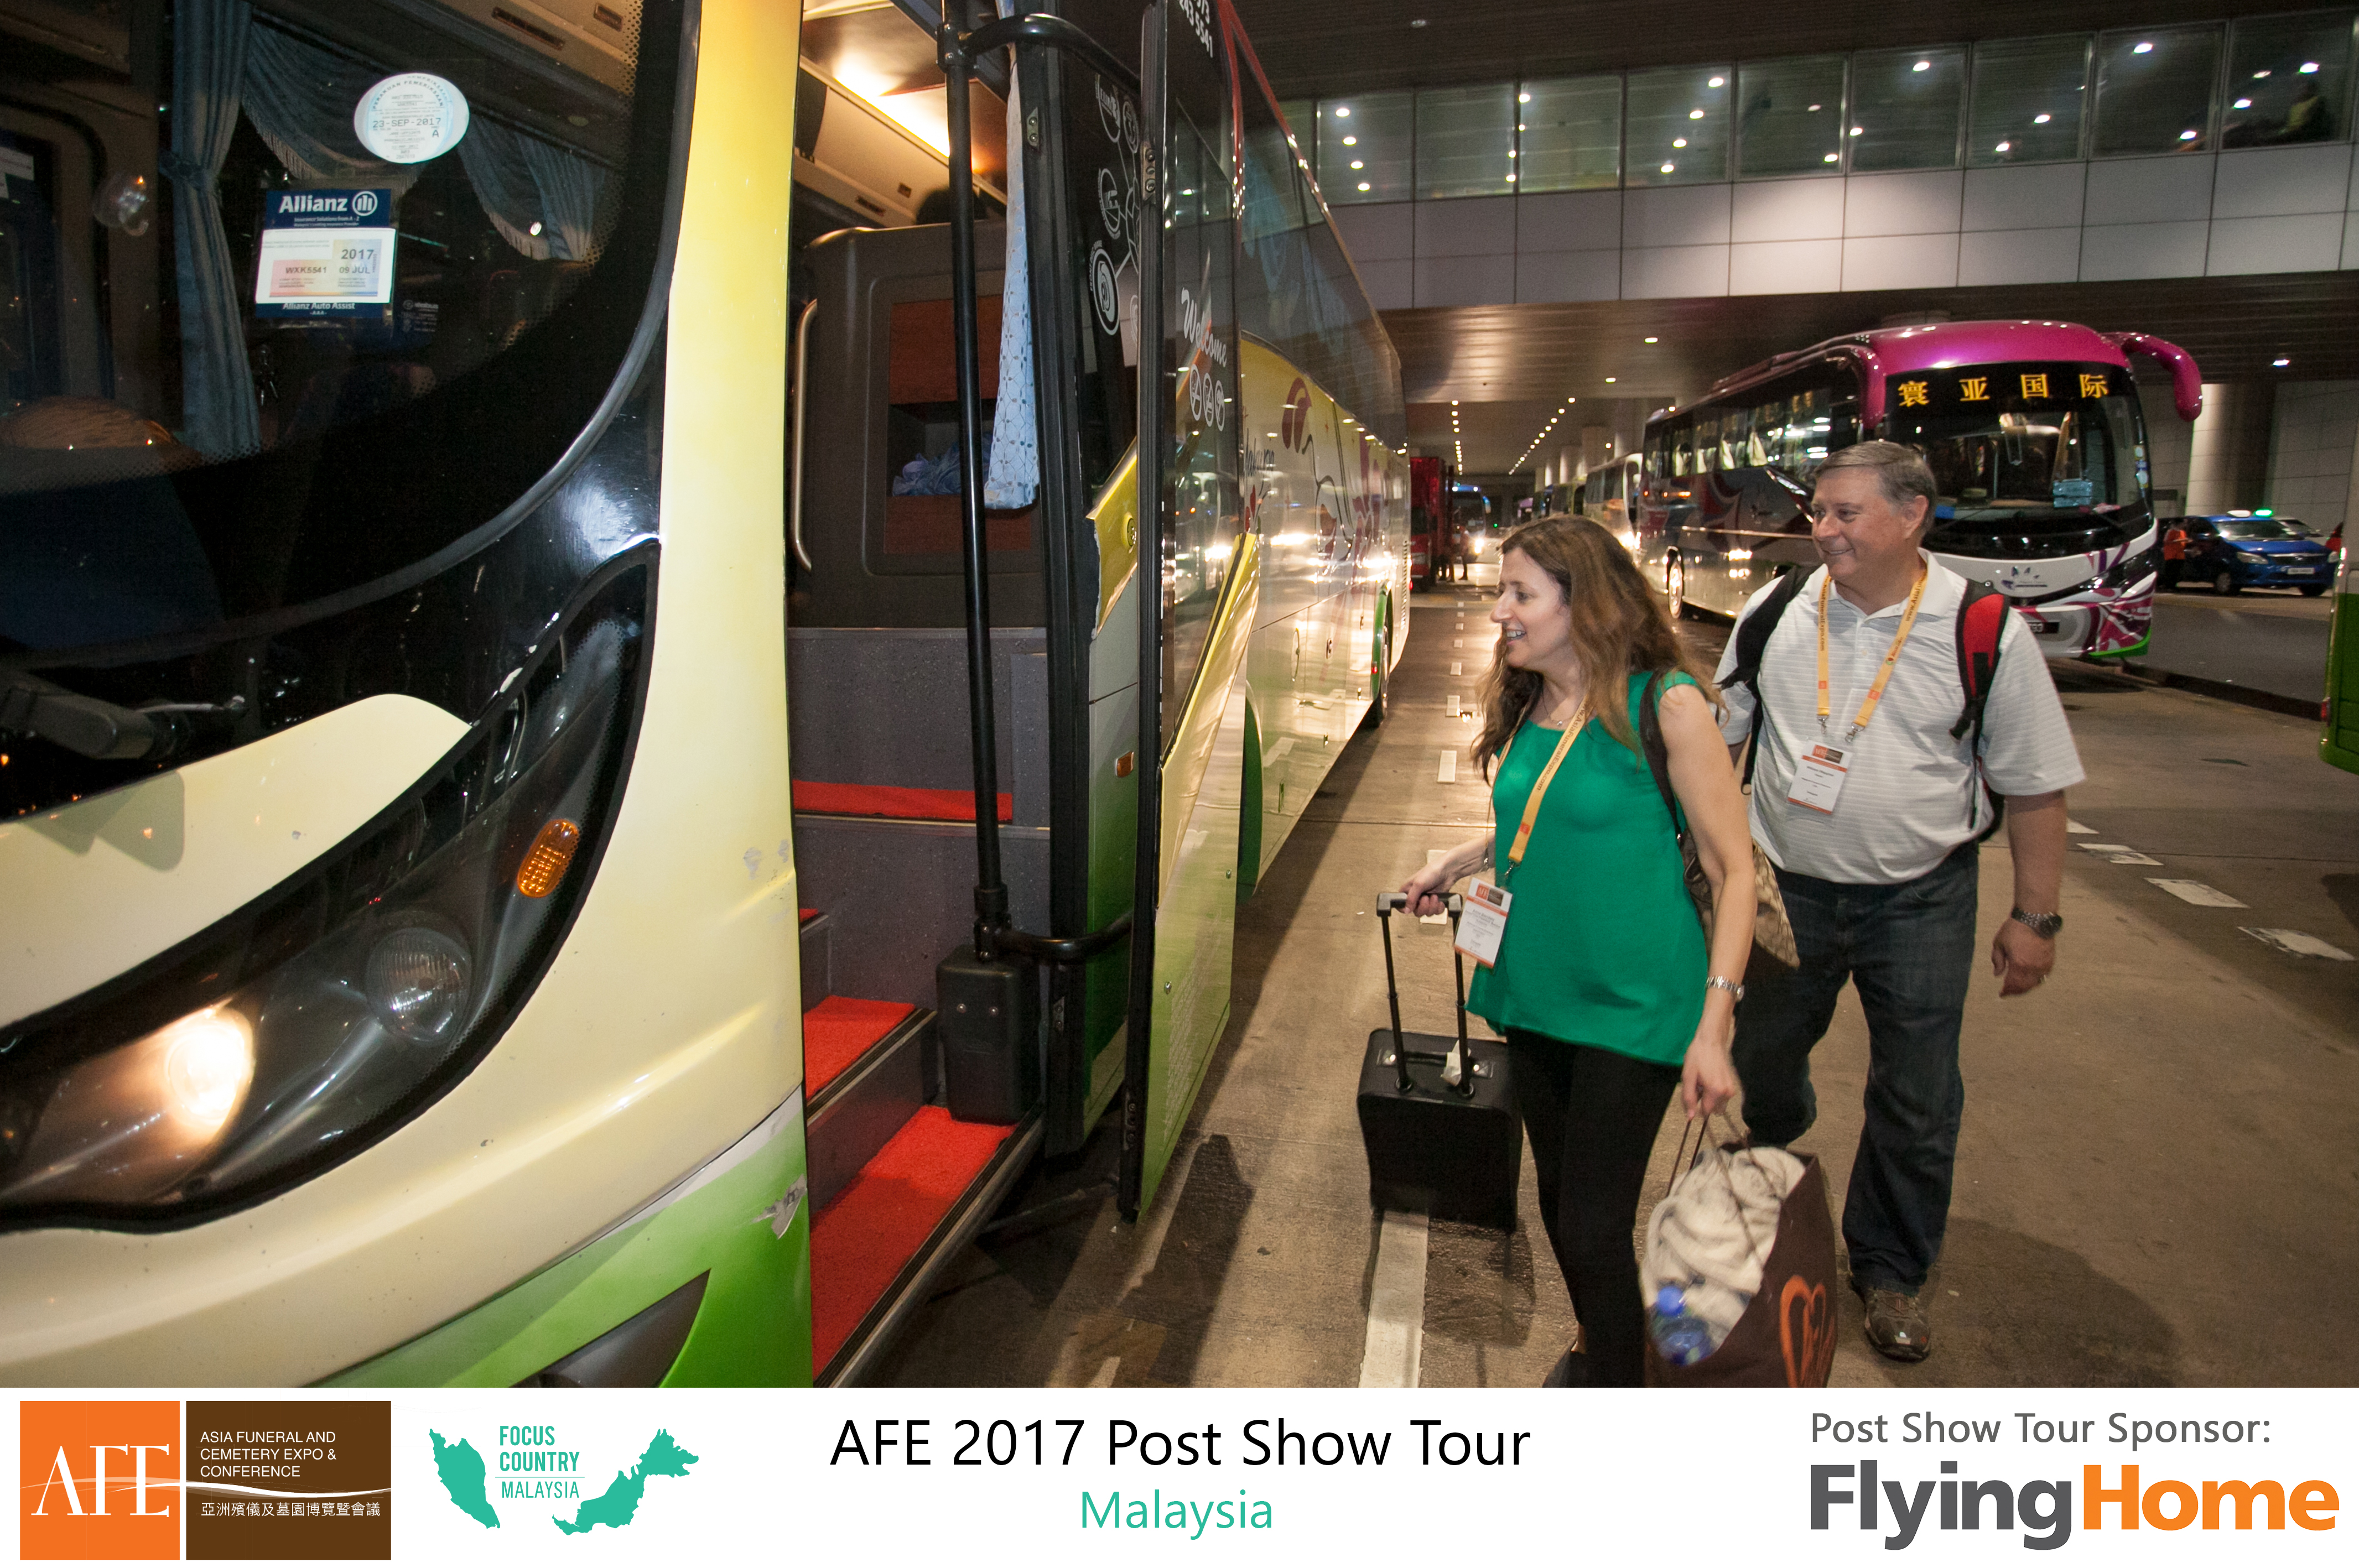 AFE Post Show Tour 2017 Day 1 - 36